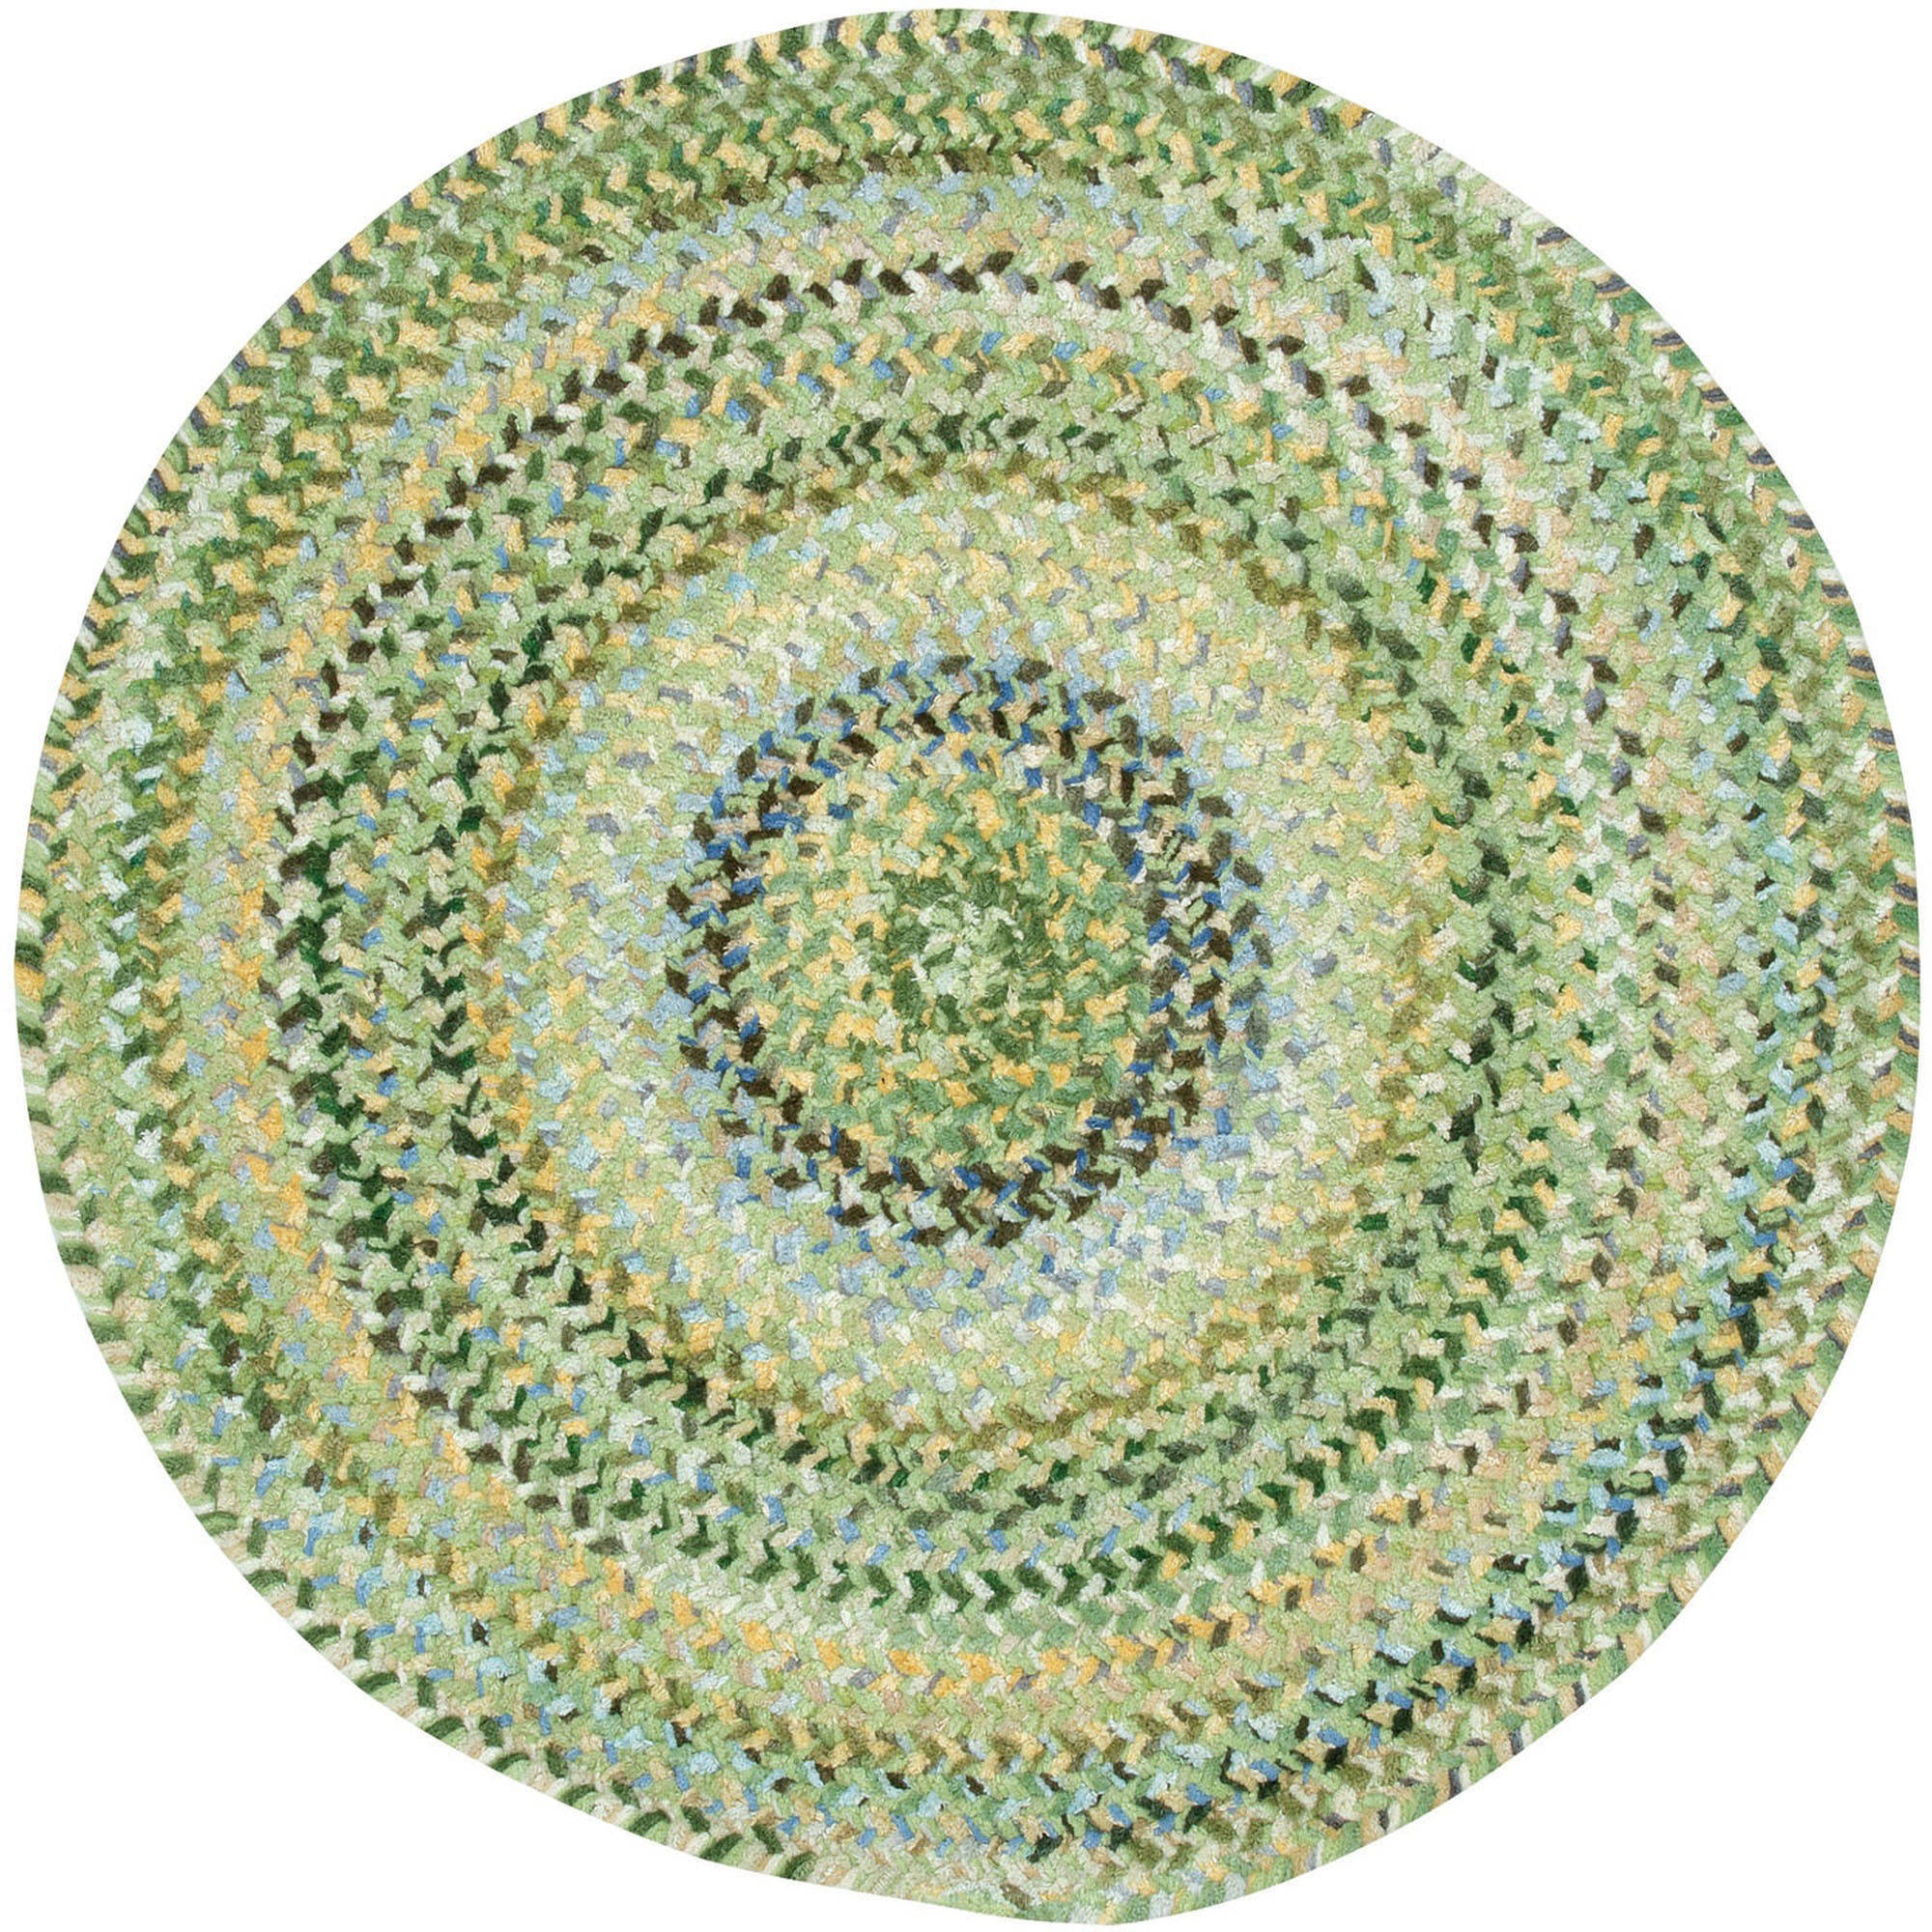 Ocracoke Round Braided Area Rug